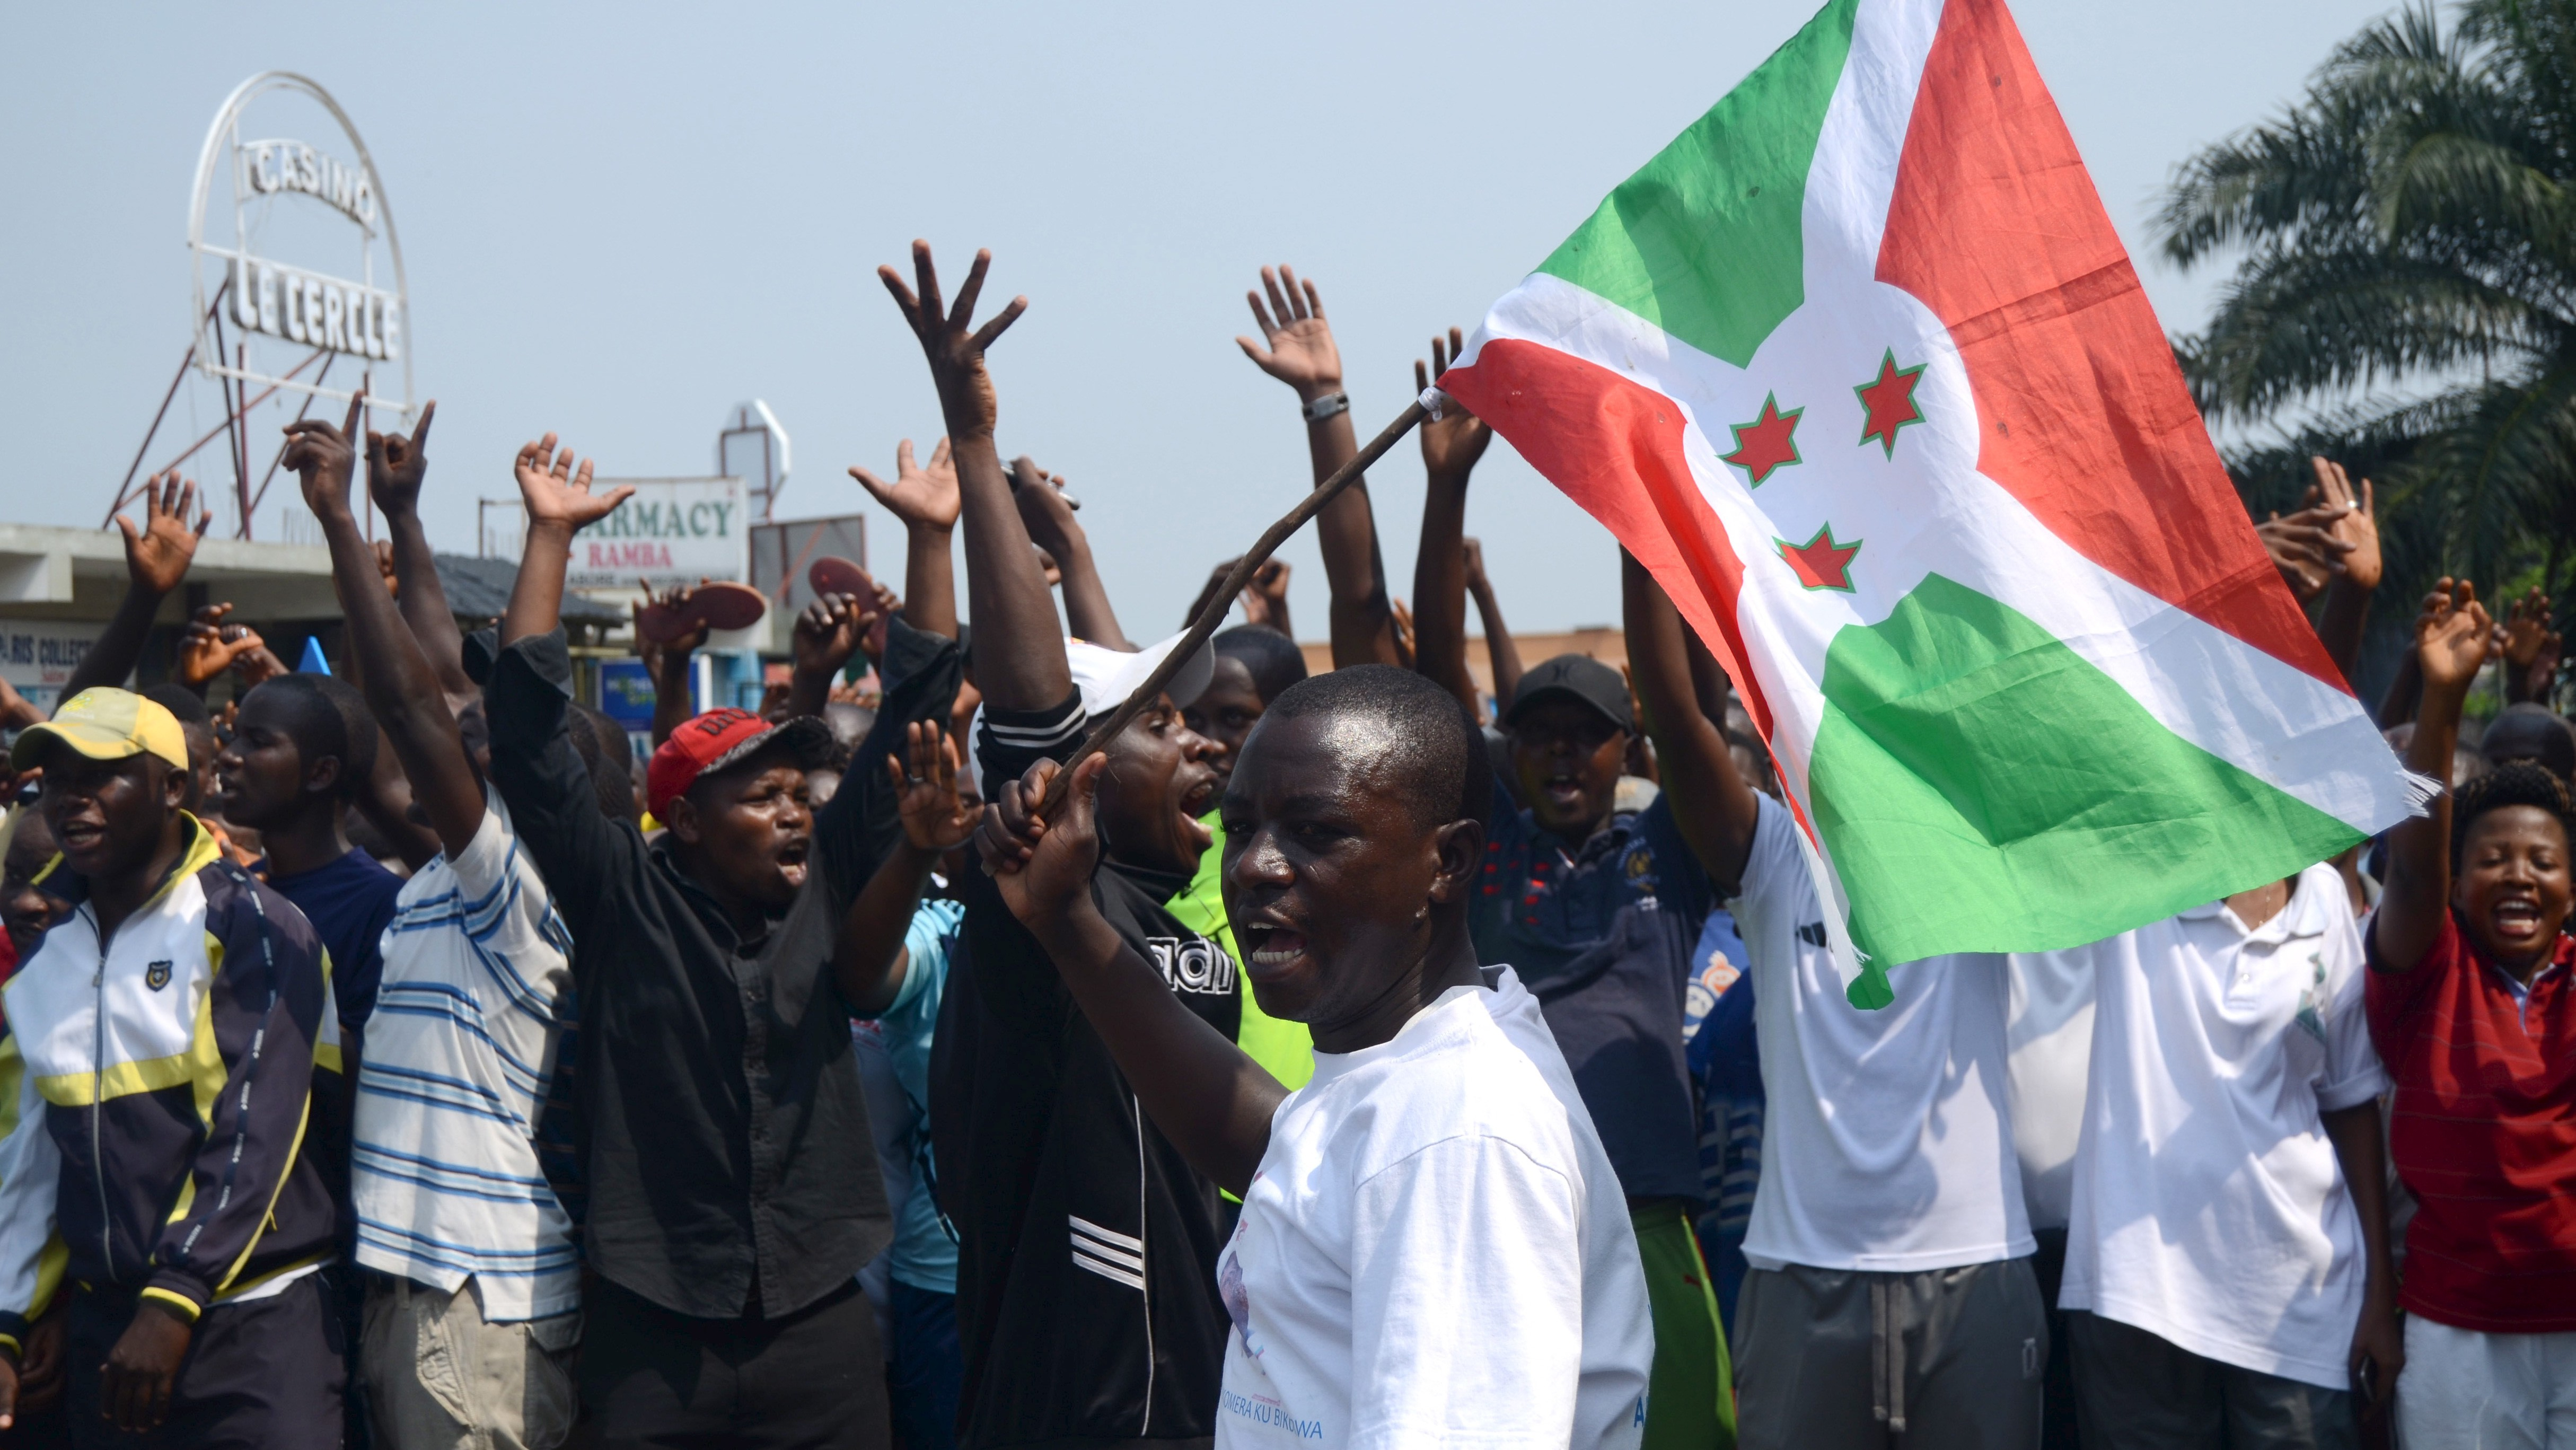 """Residents chant slogans against Rwanda's President Paul Kagame as they participate in a demonstration against the Rwandan government in Burundi's capital Bujumbura, February 13, 2016. In a sign of further strained relations, thousands of demonstrators drawn mainly from the ruling CNDD-FDD party and its ally UPRONA took part on Saturday in a peaceful march against Rwanda. Demonstrators marched in Bujumbura and other parts of the country, waving placards reading messages like """"We denounce Rwanda's open aggression against Burundi"""" and """"We denounce the support of Rwanda to commandos who want to destabilise Burundi.""""REUTERS/Evrard Ngendakumana - RTX26R01"""